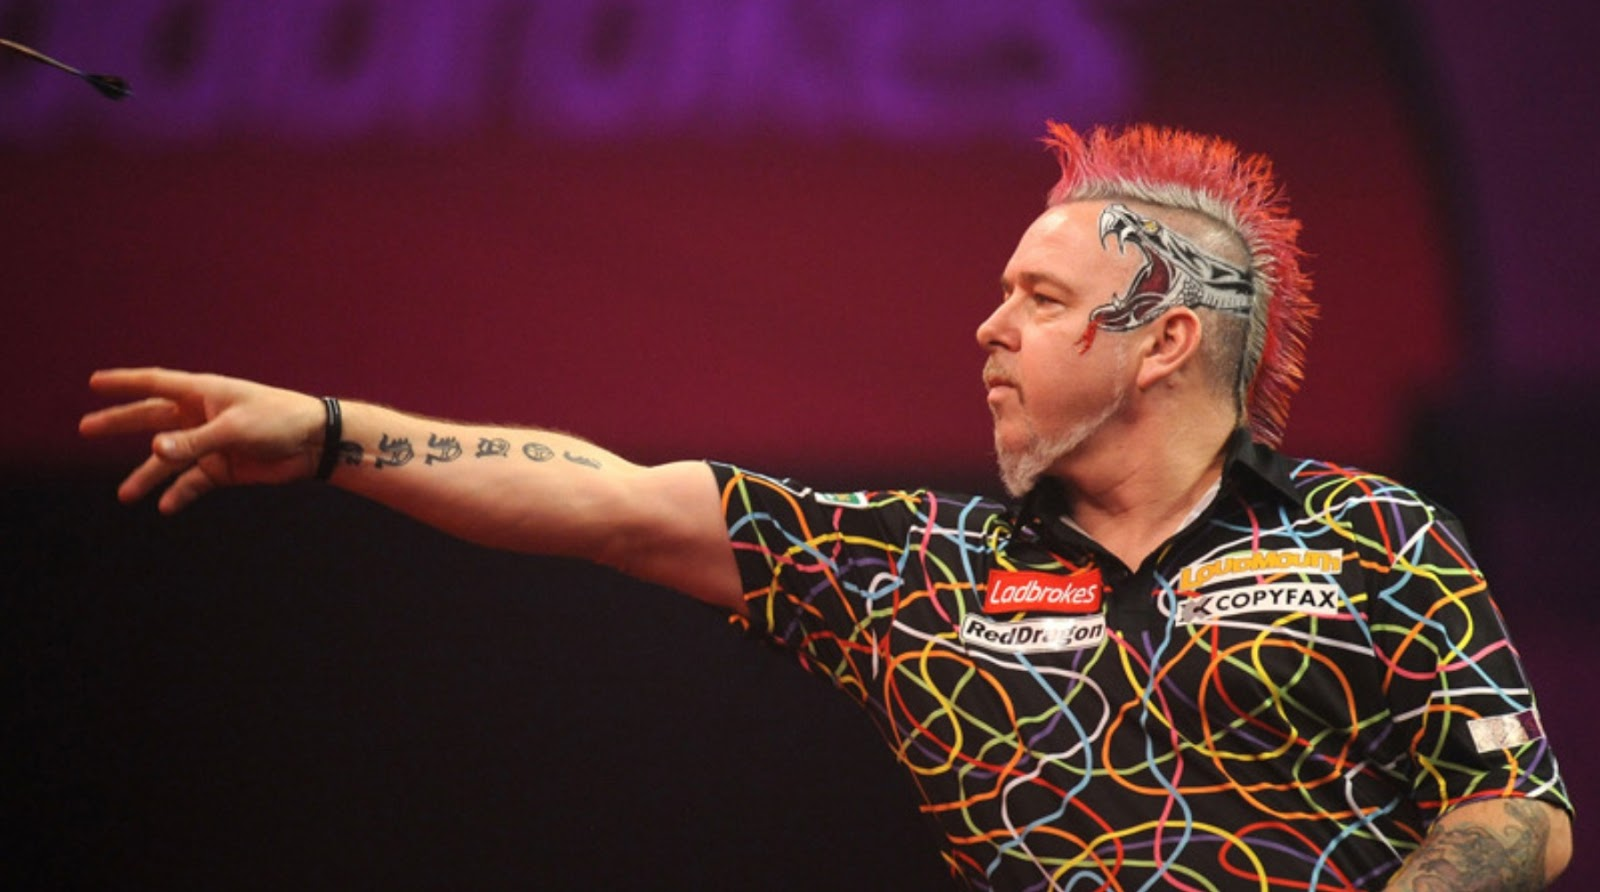 how much peter wright earn from darts competition 2017